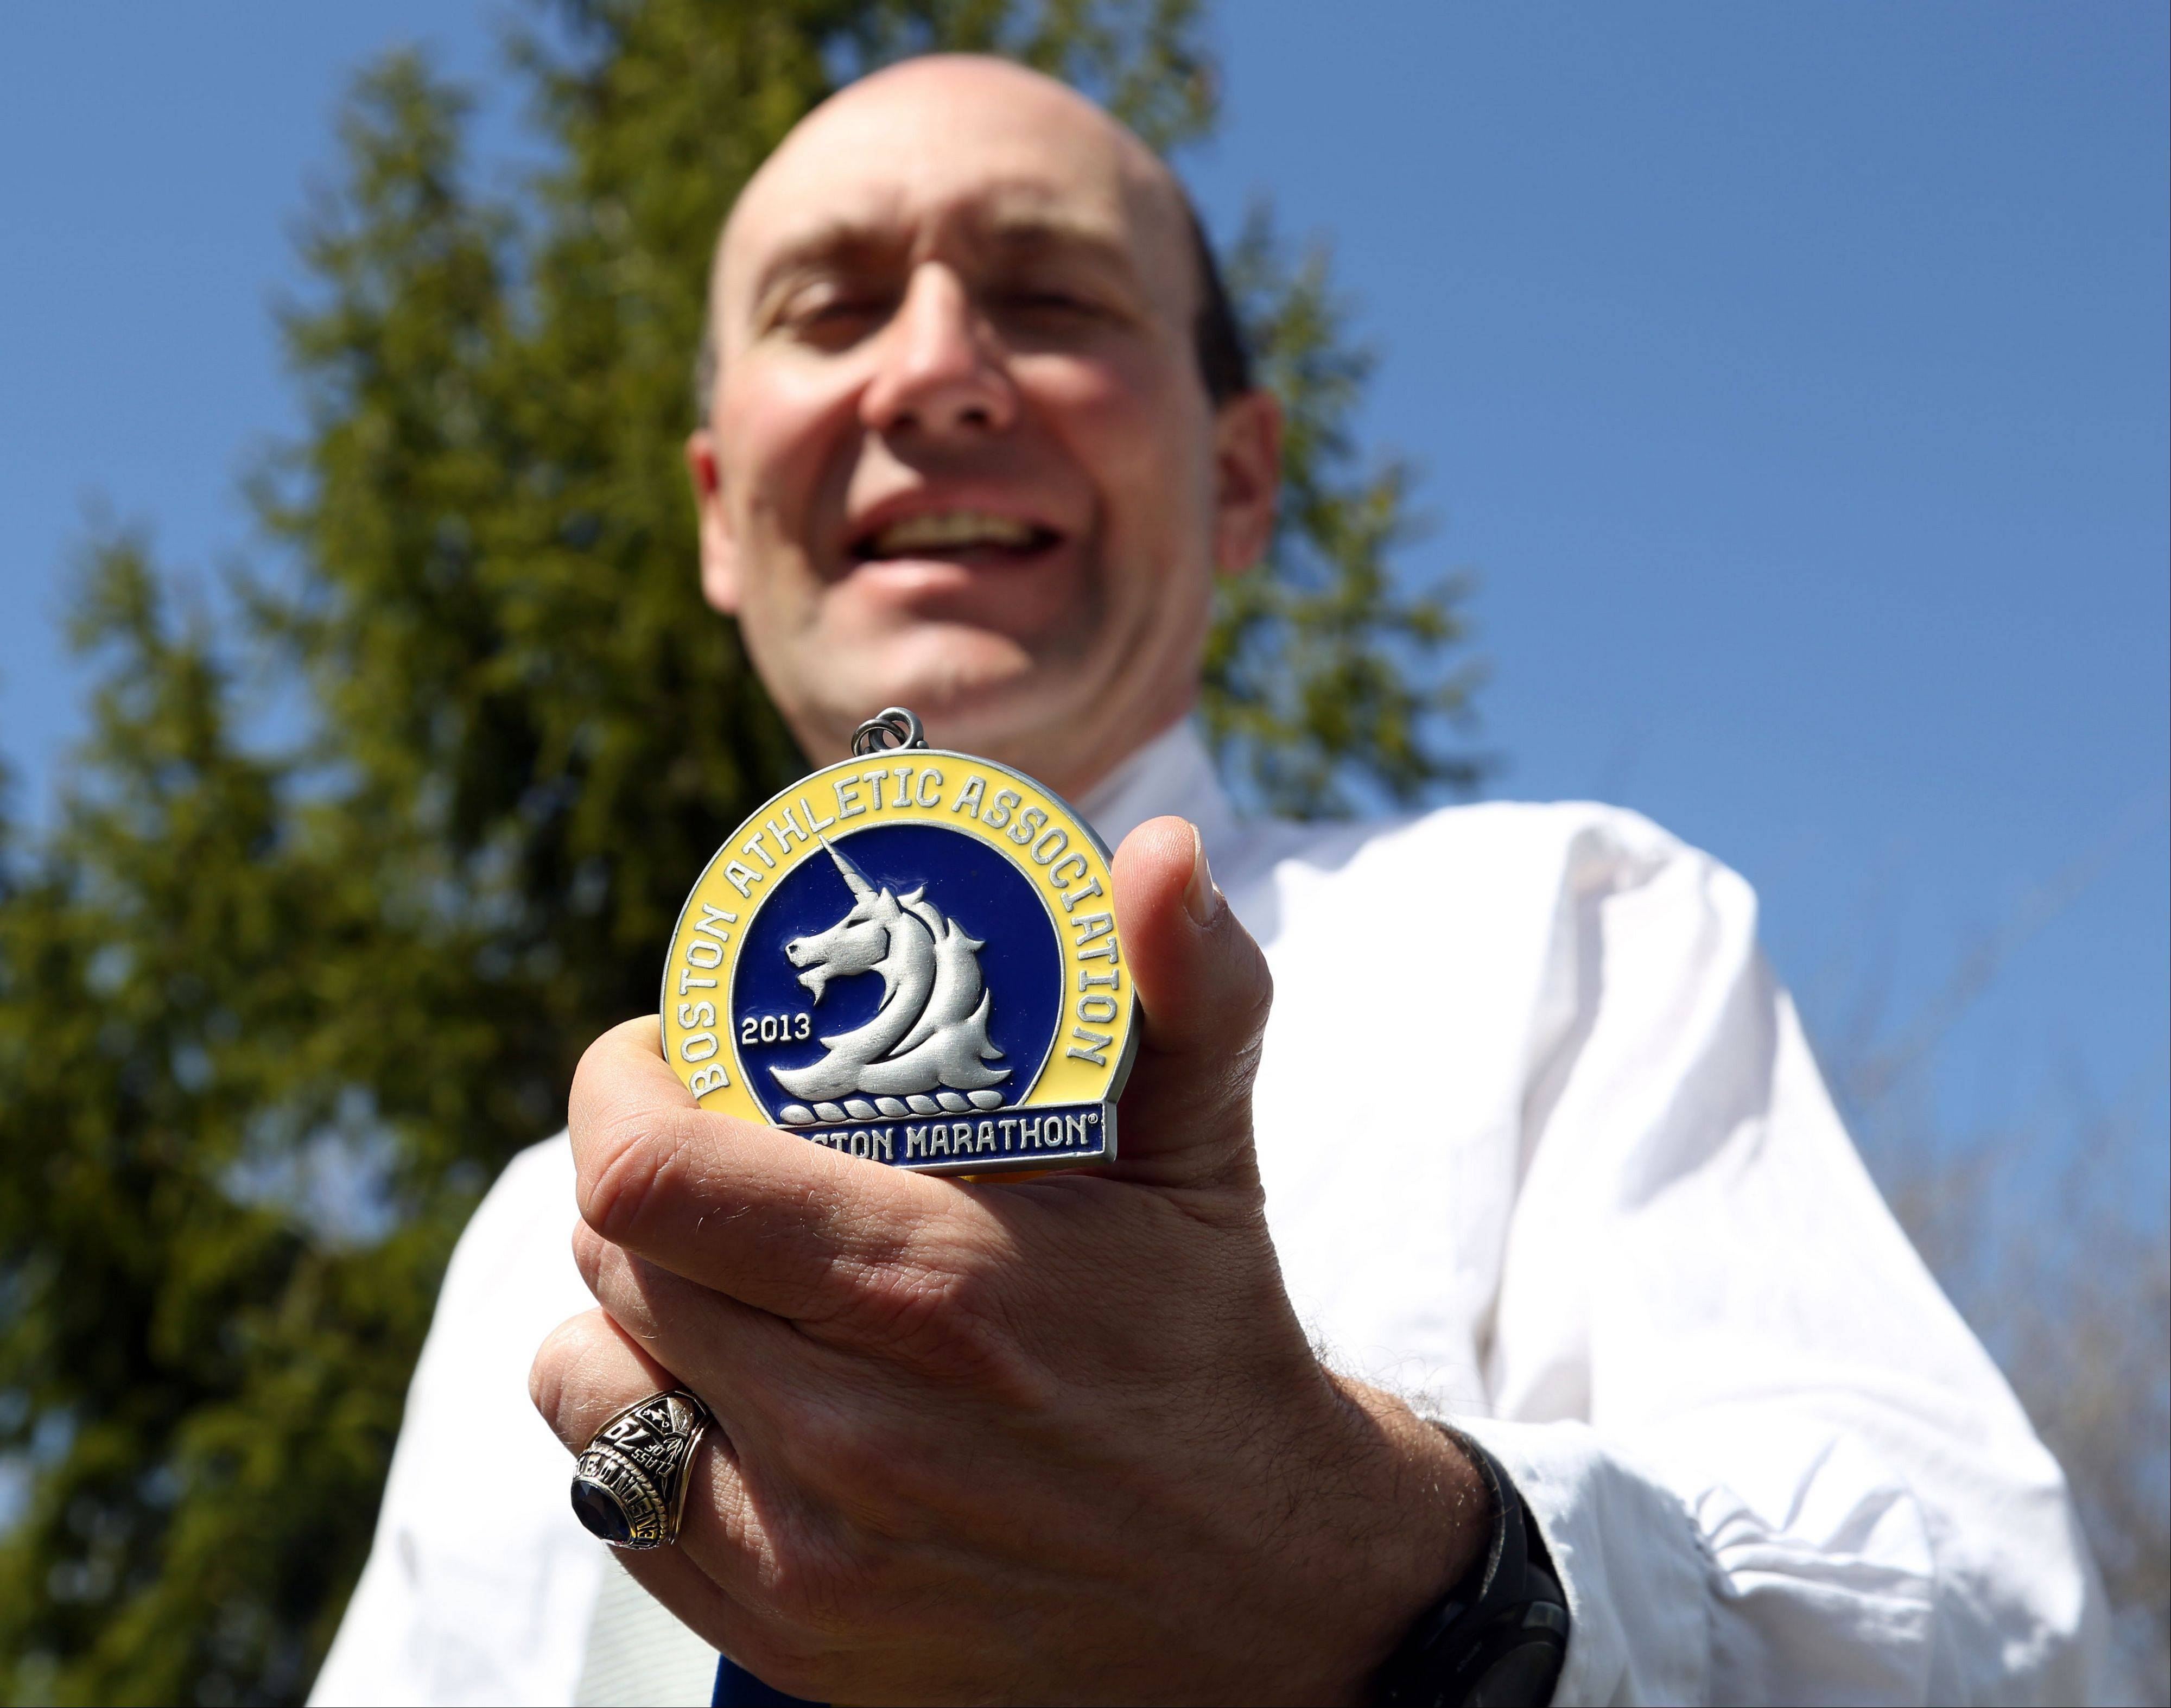 Hawthorn Woods resident Al Scaletta holds up his medallion from Monday's Boston Marathon. He plans to run the Boston Marathon again next year.